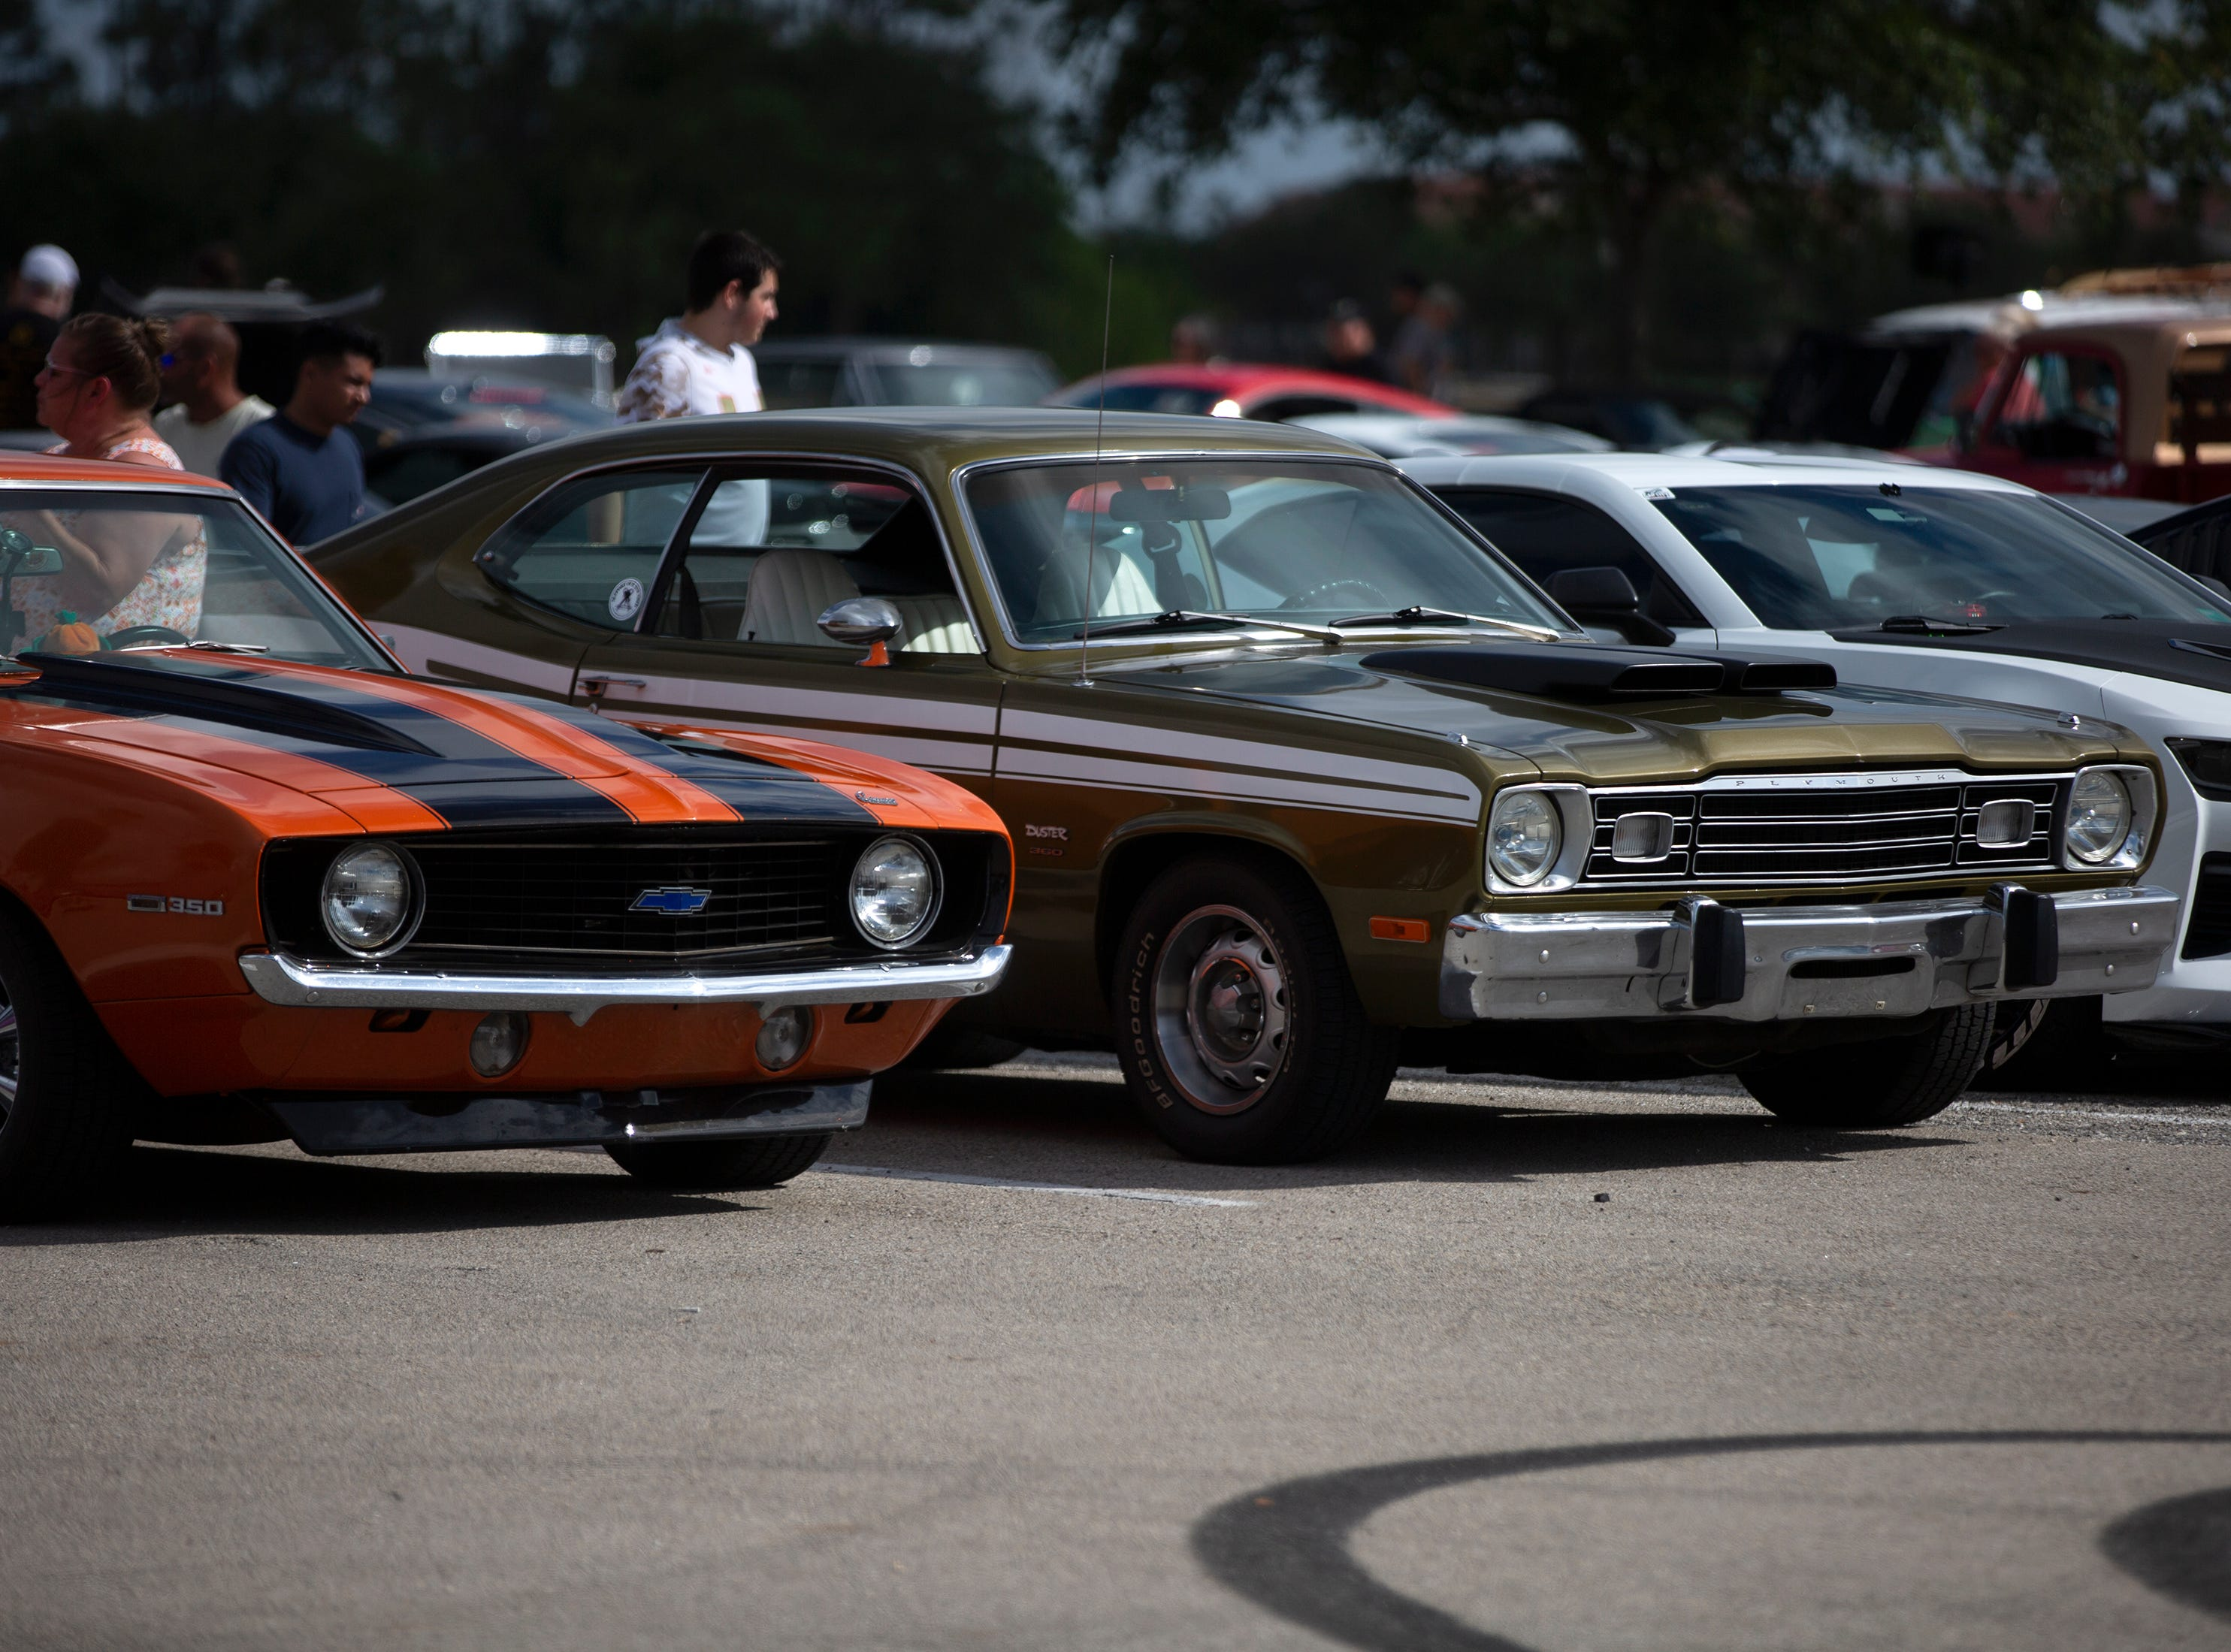 Cars are displayed in a parking lot at the Miromar Outlets during the Cruis'n for a Cause event on Saturday, April 13, 2019 in Estero.